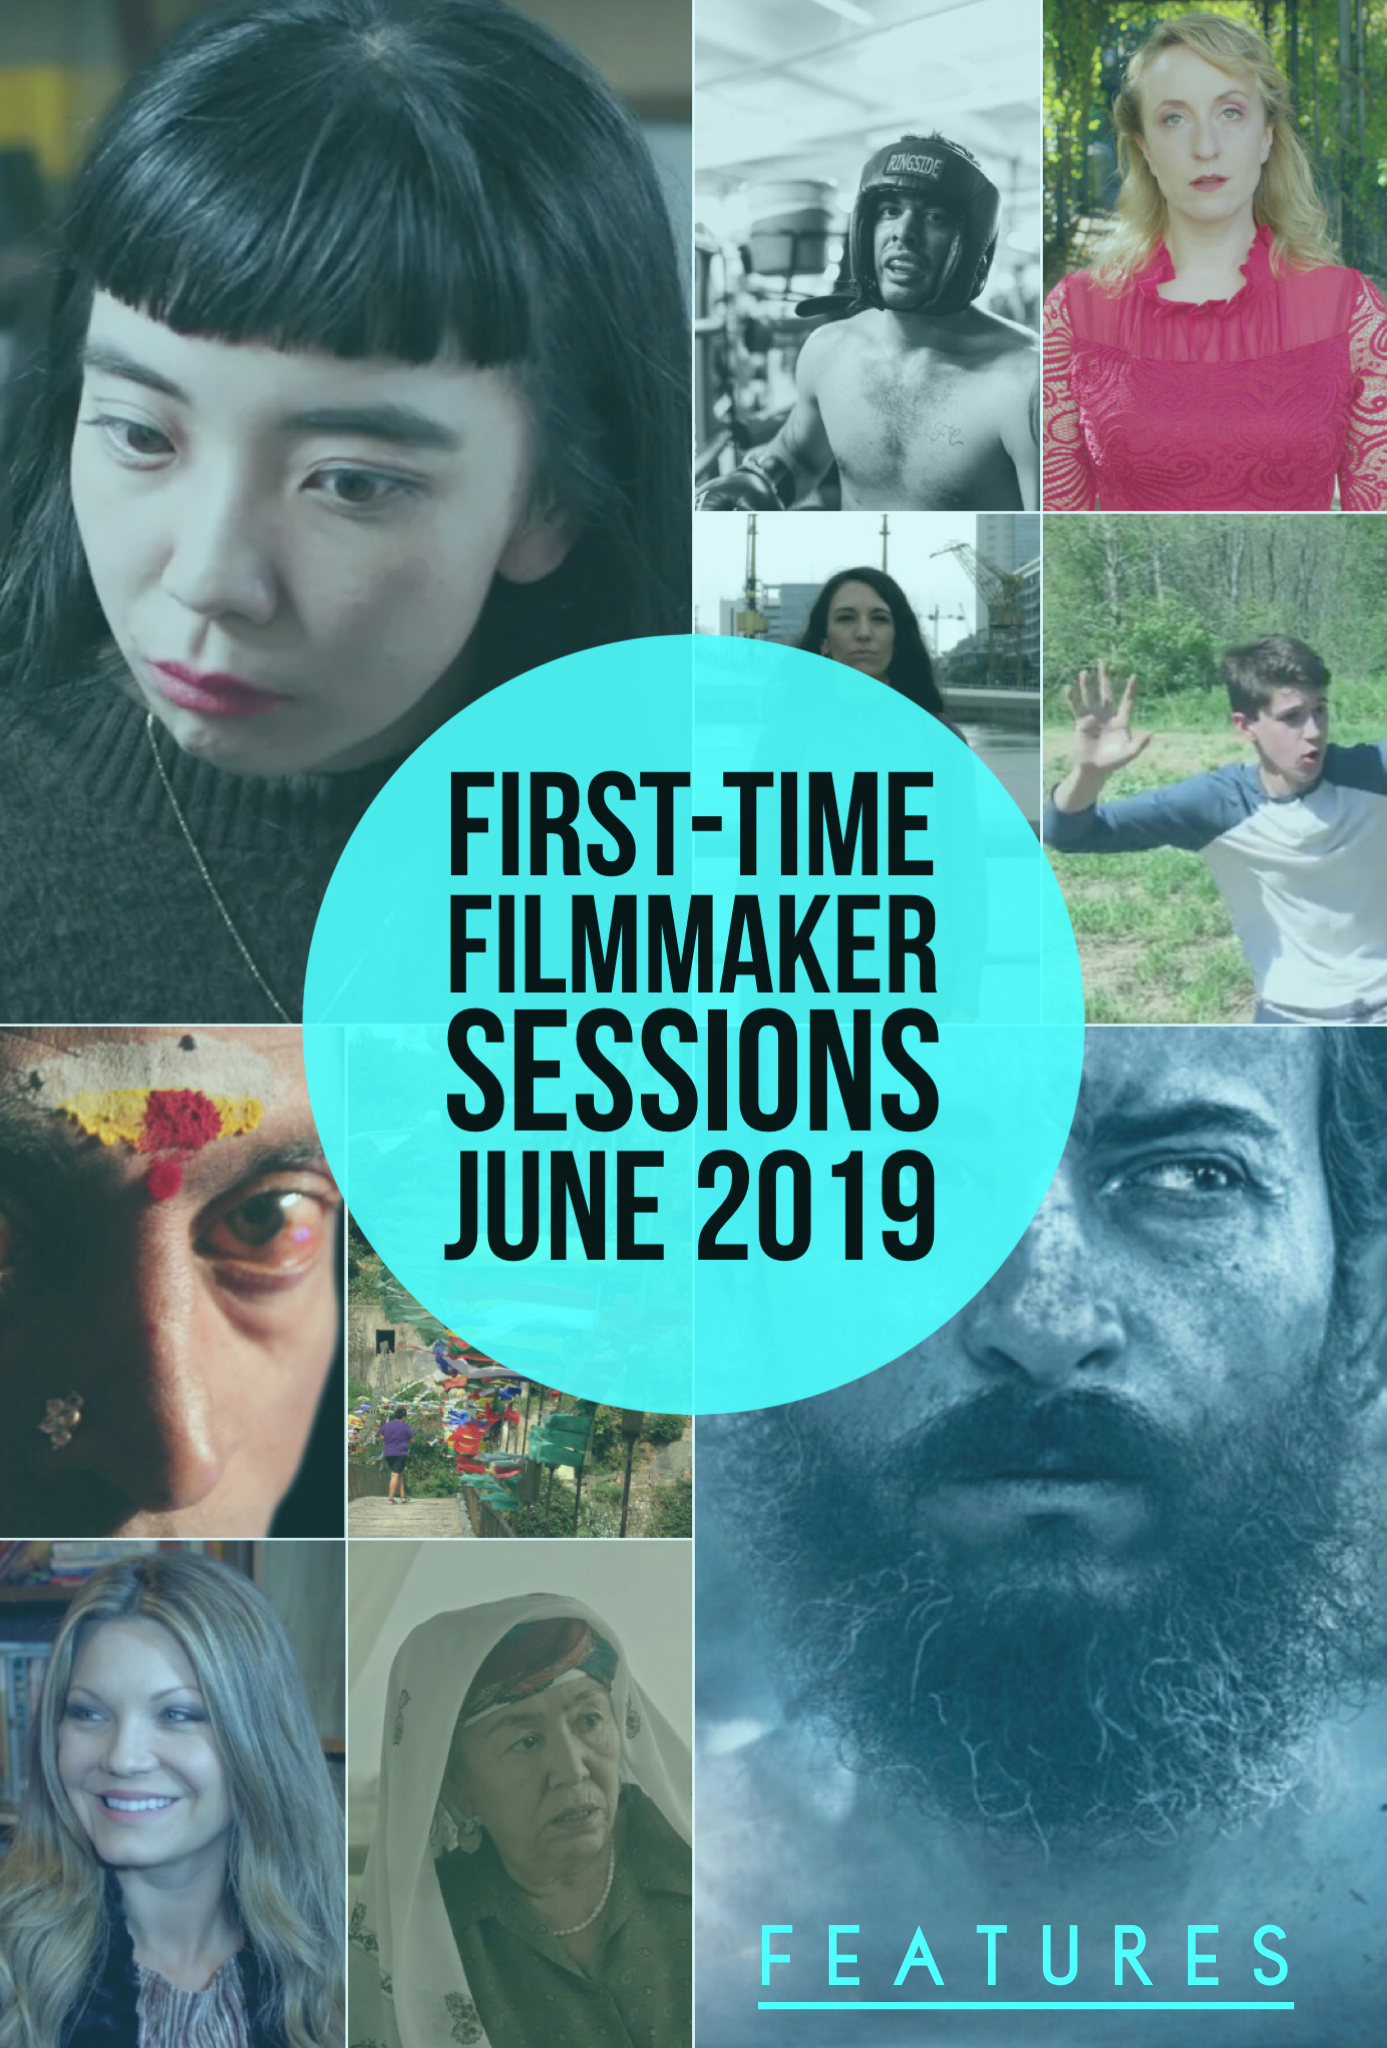 First-time filmmaker Sessions 2019. Documentary Femicide. One case, many struggles